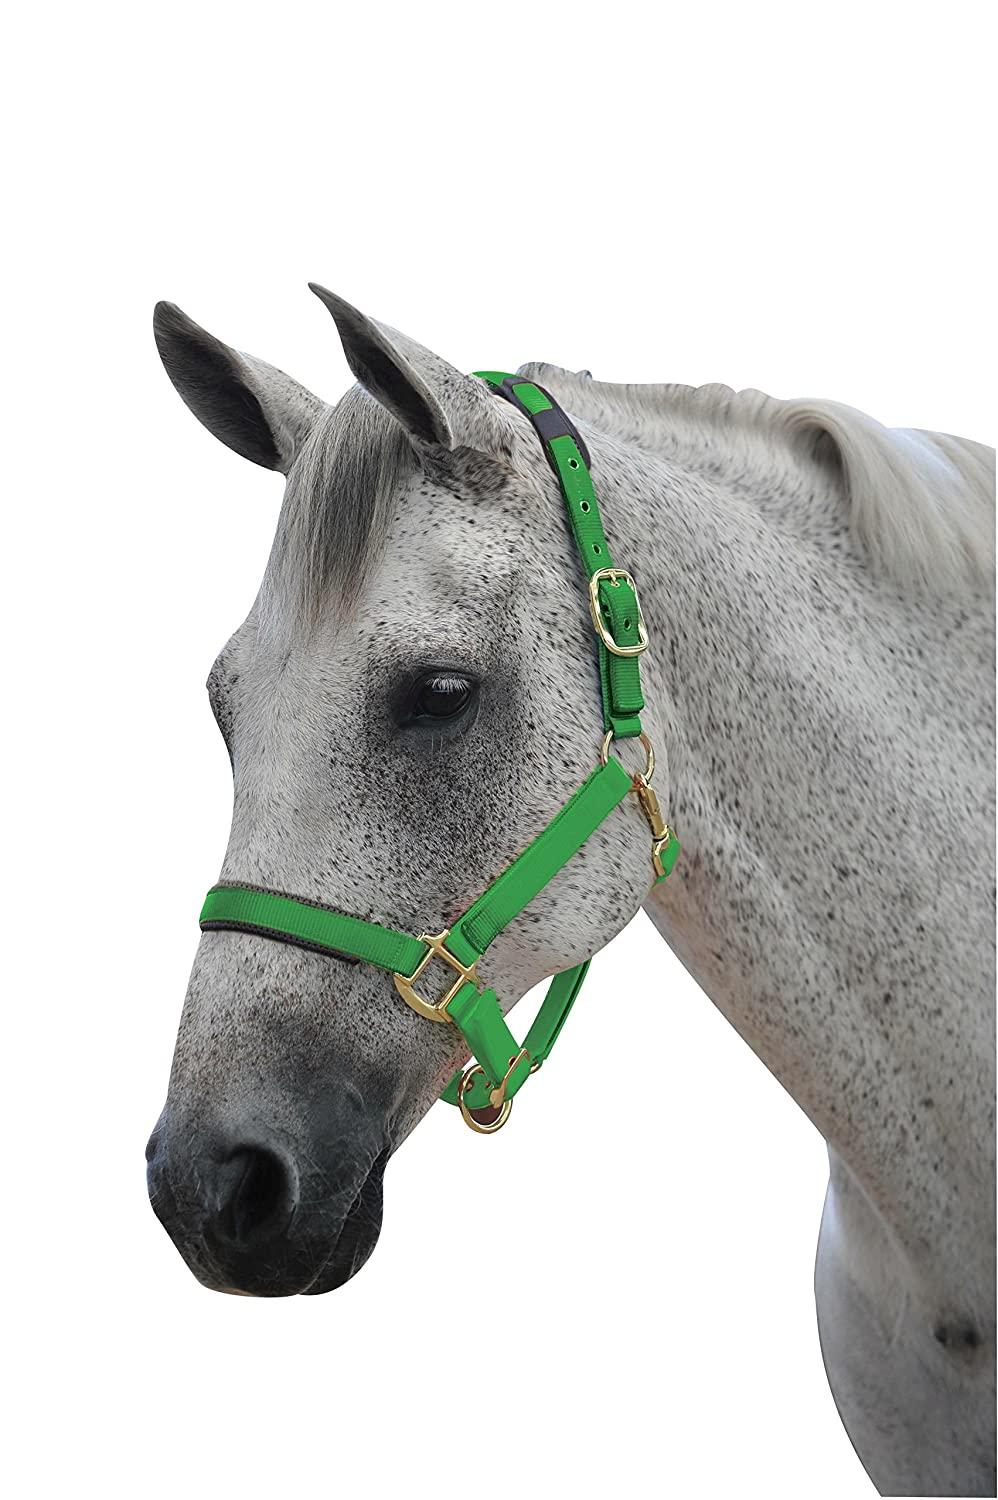 Roma Brights Breakaway Halter Full フル オレンジ B019EIFZJY